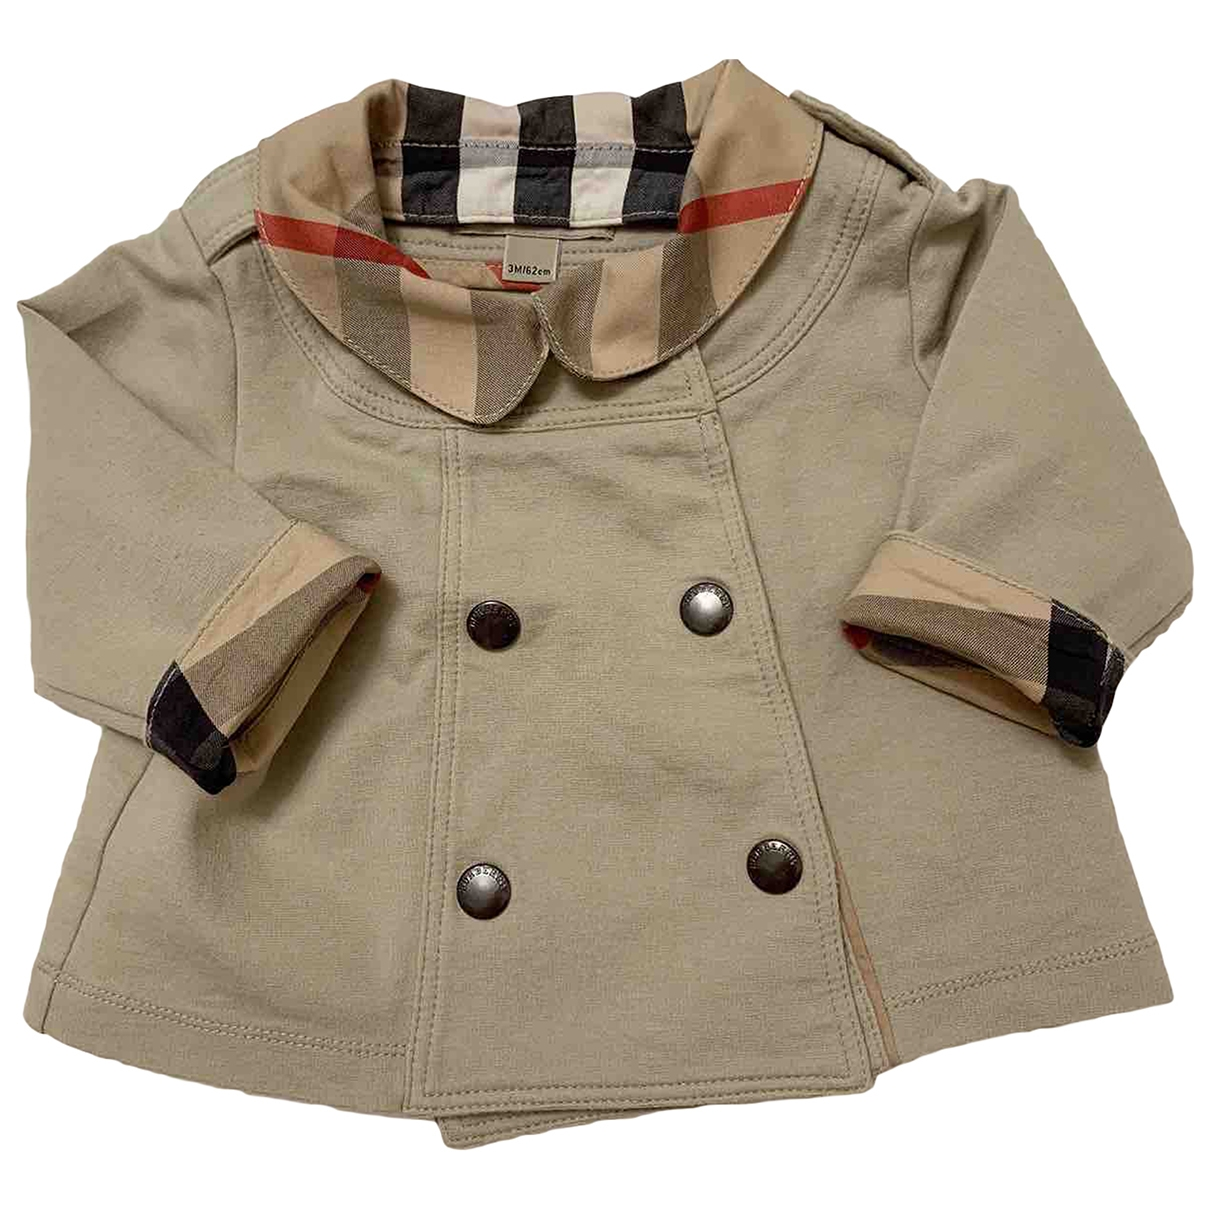 Burberry \N Cotton jacket & coat for Kids 3 months - until 24 inches UK